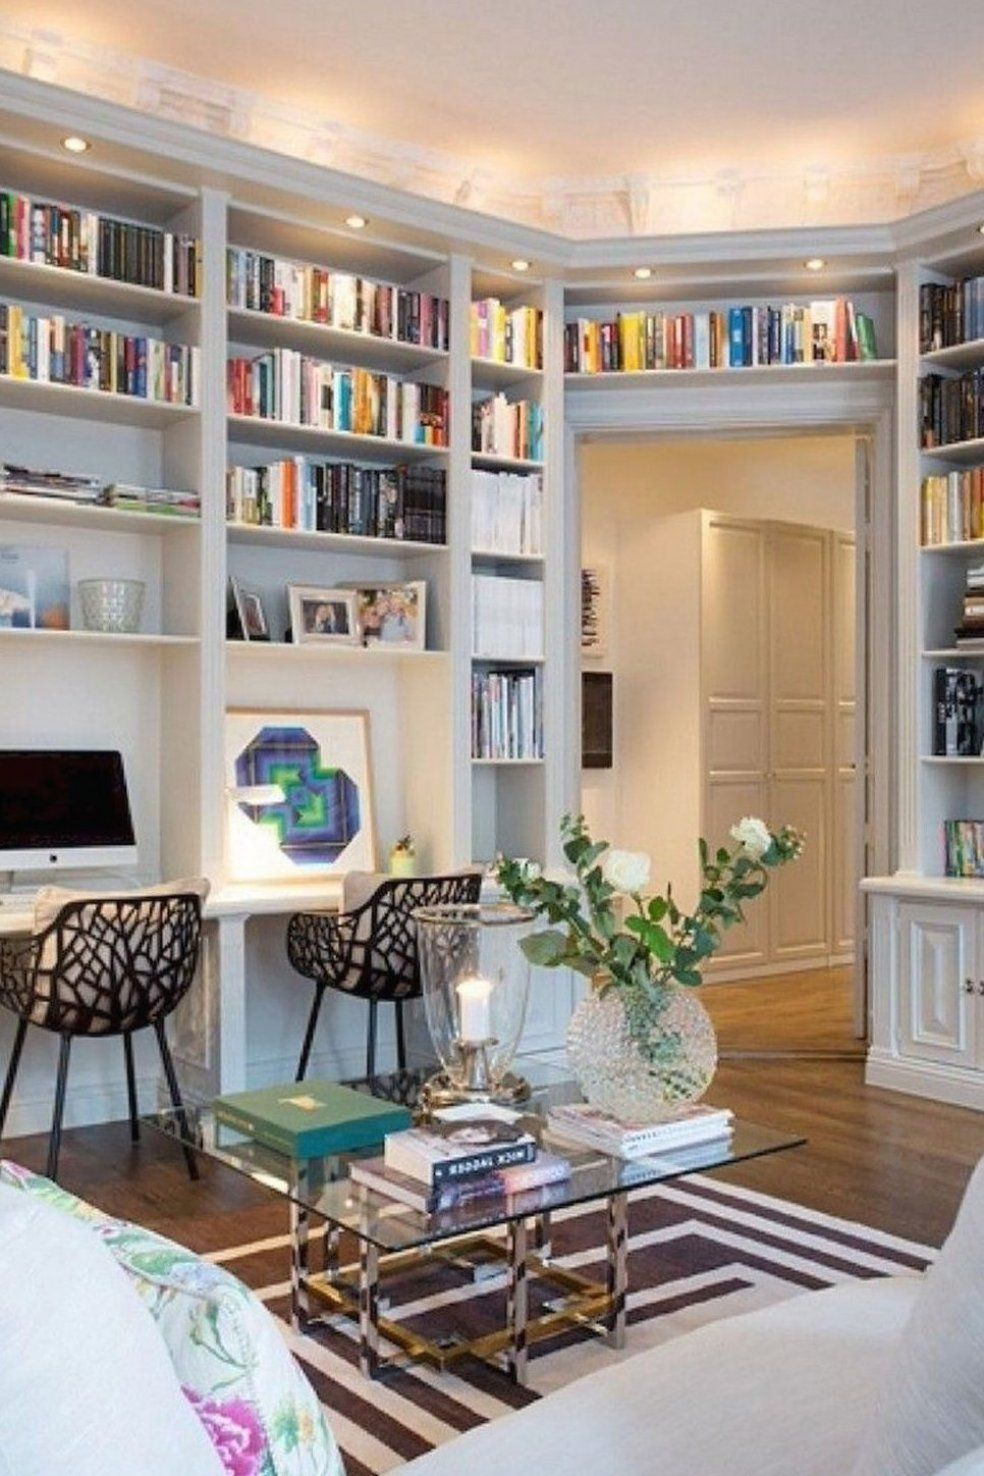 Cozy Reading Room Design Ideas: Cool 30 Inspiring Reading Room Decoration Ideas To Make